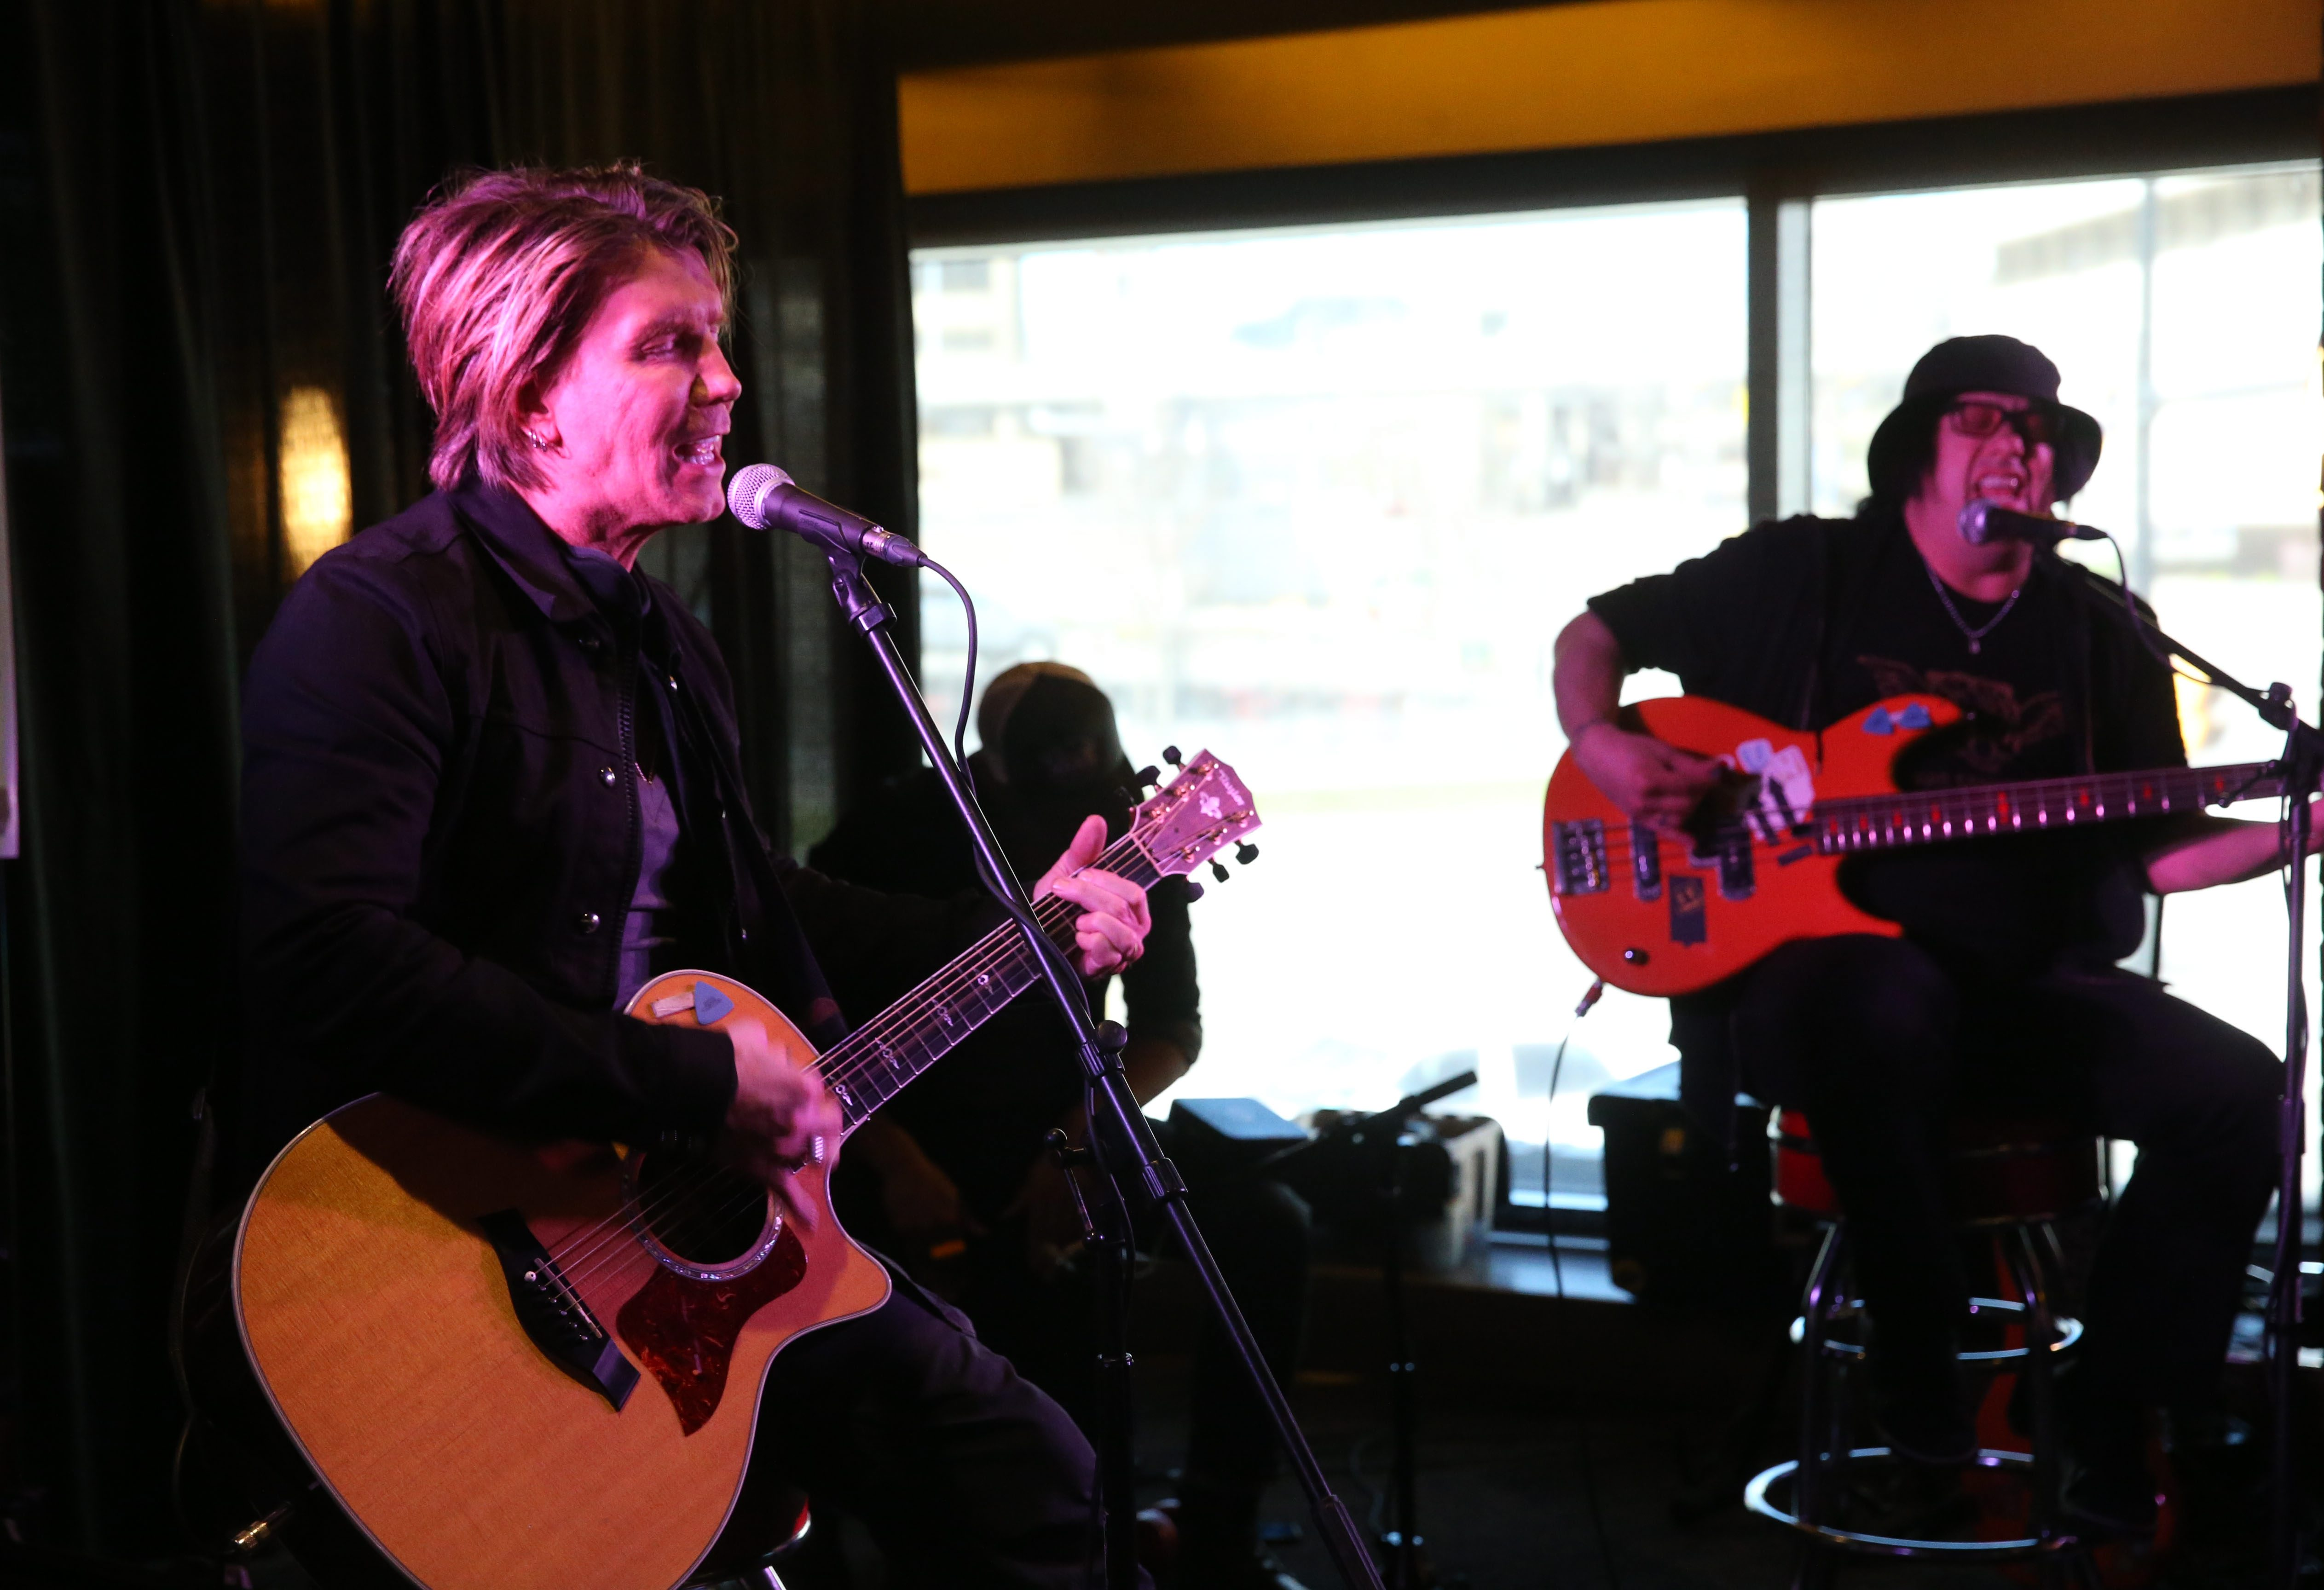 Goo Goo Dolls perform a short acoustic show  as part of a record release at 716 Food and Sport.  From left are John Rzeznik and Robby Takac.  (Sharon Cantillon/Buffalo News)